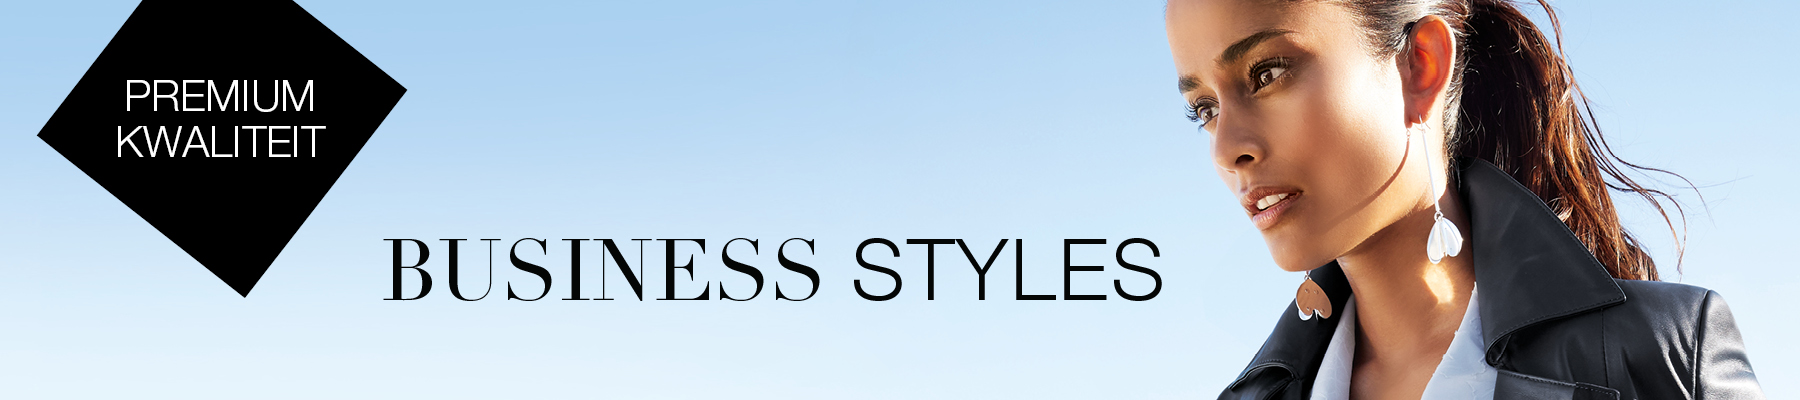 NED_BENEd_CC_BusinessFS20_Styles_einzelne_expand.jpg